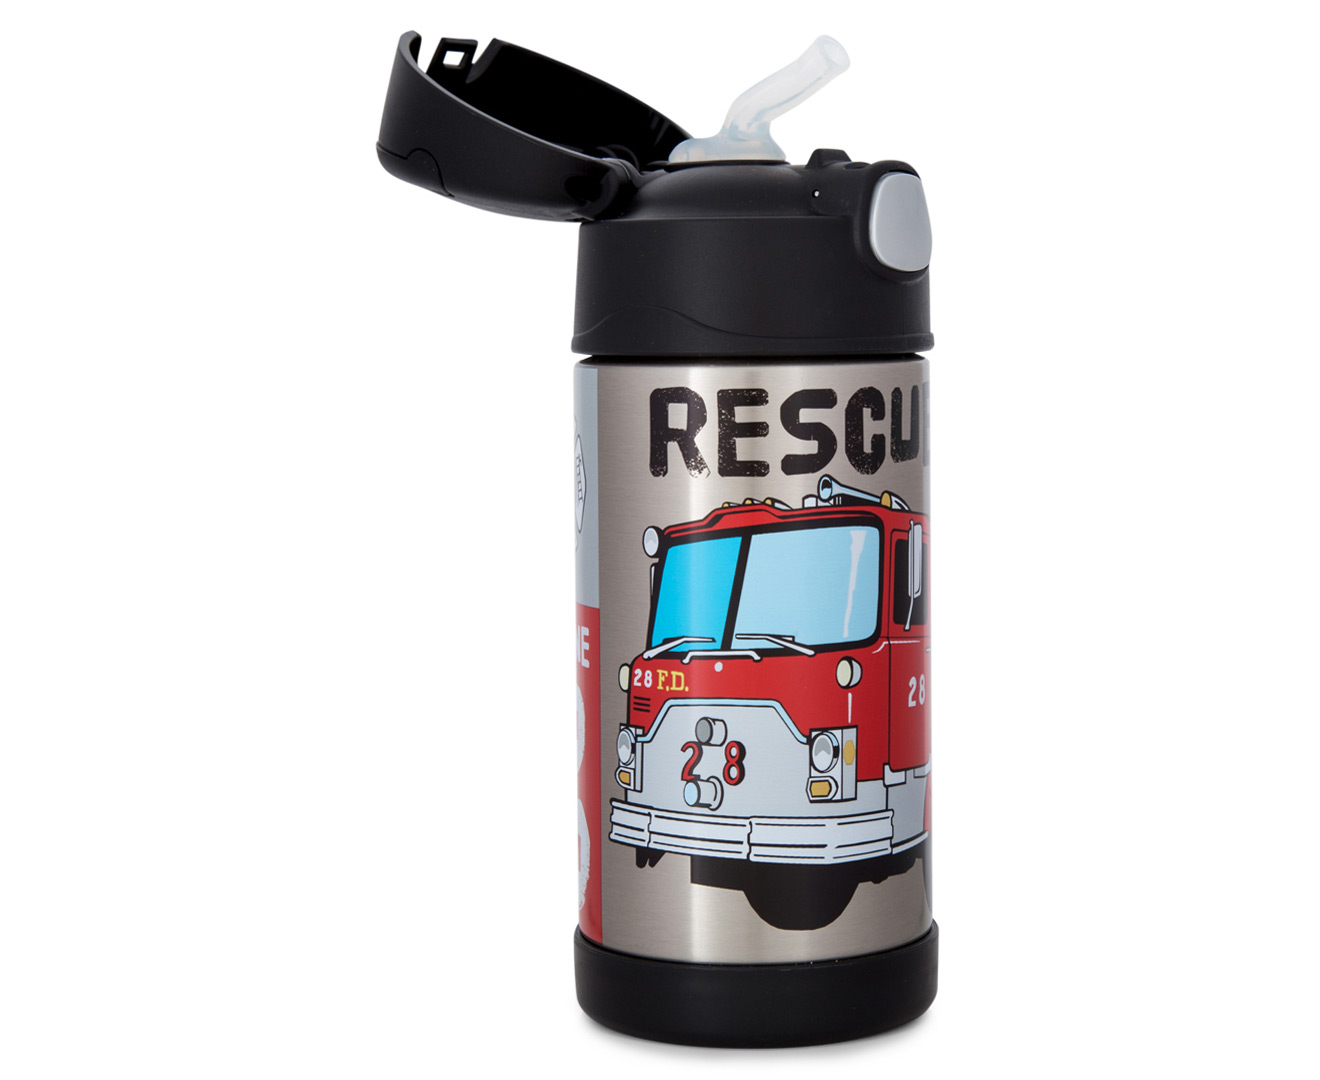 Thermos 355ml Funtainer Vacuum Insulated Stainless Steel